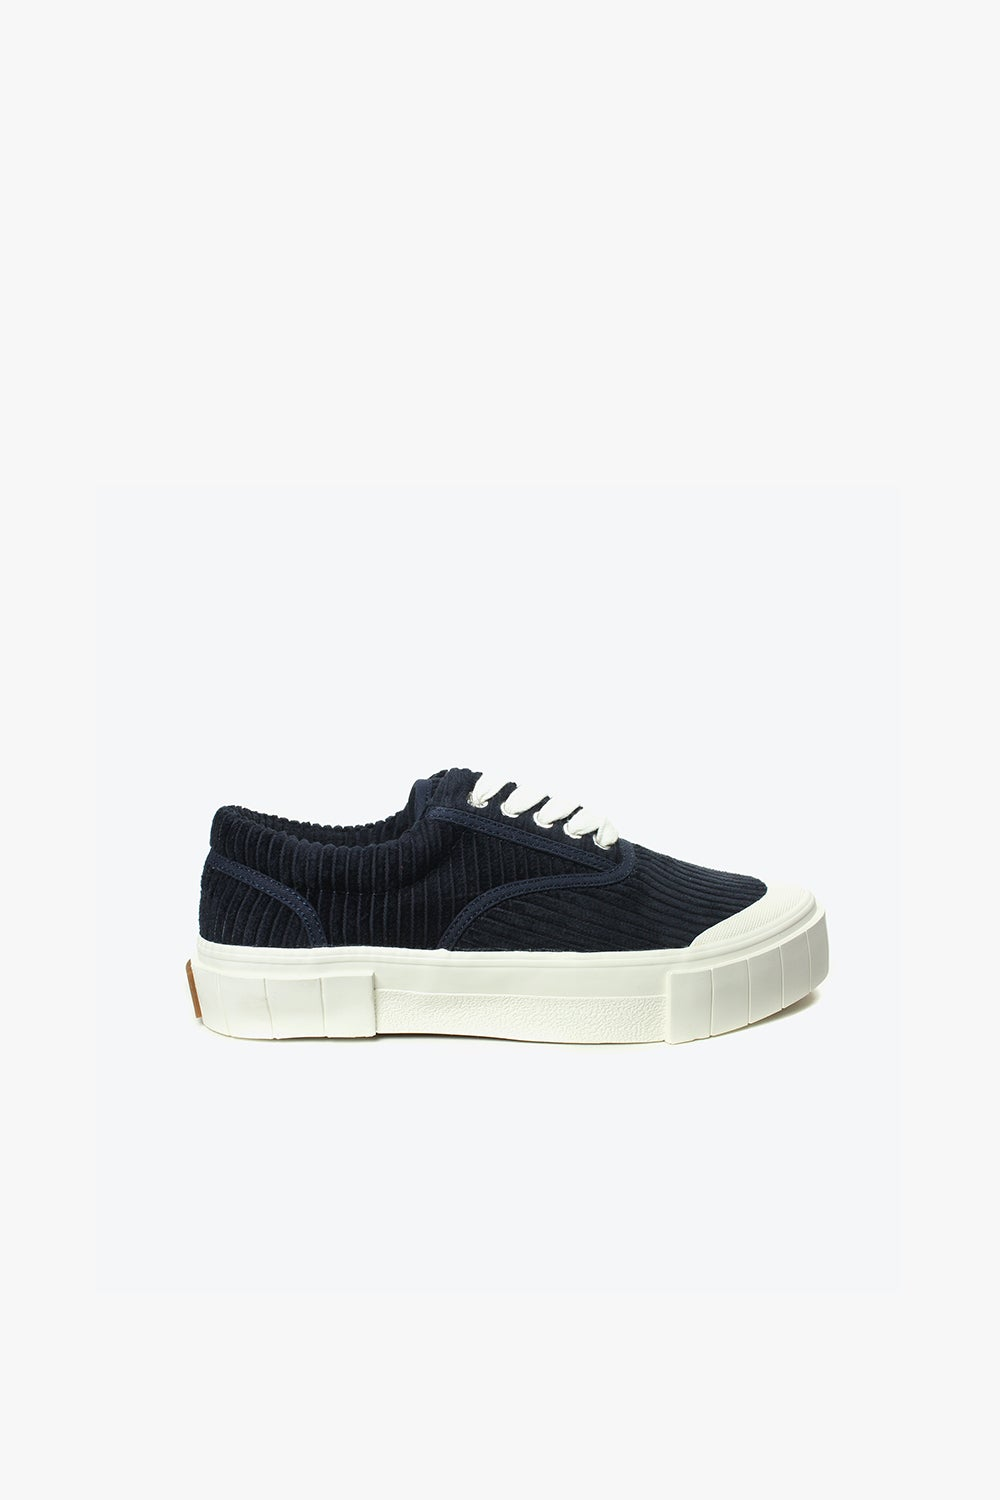 Good News Opal Corduroy Navy